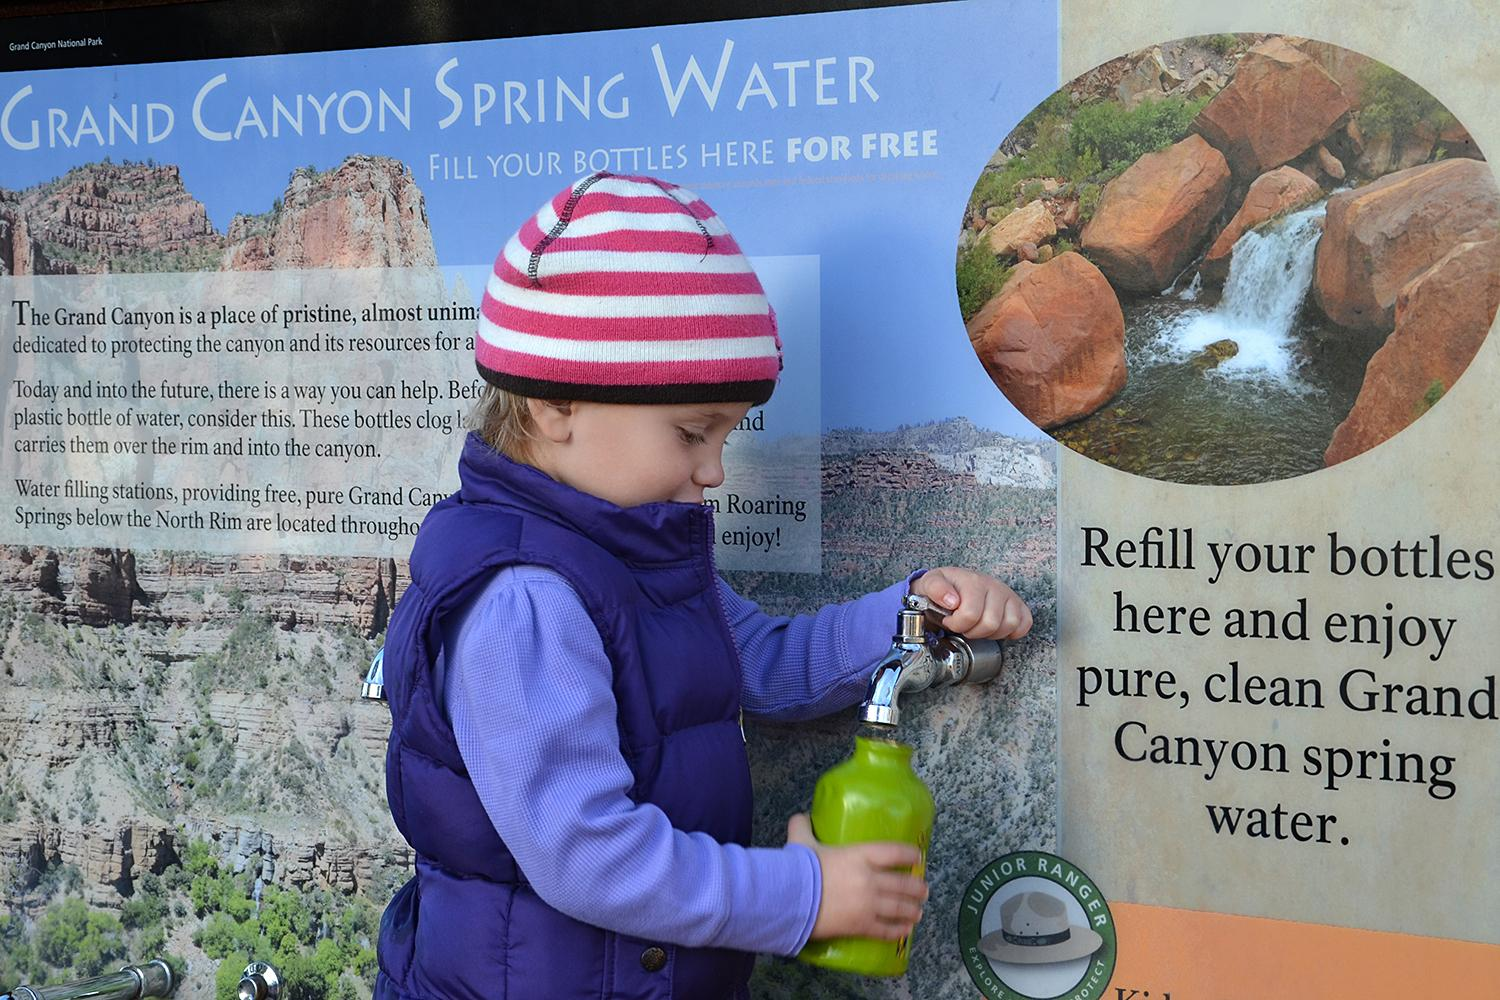 Grand Canyon spring water